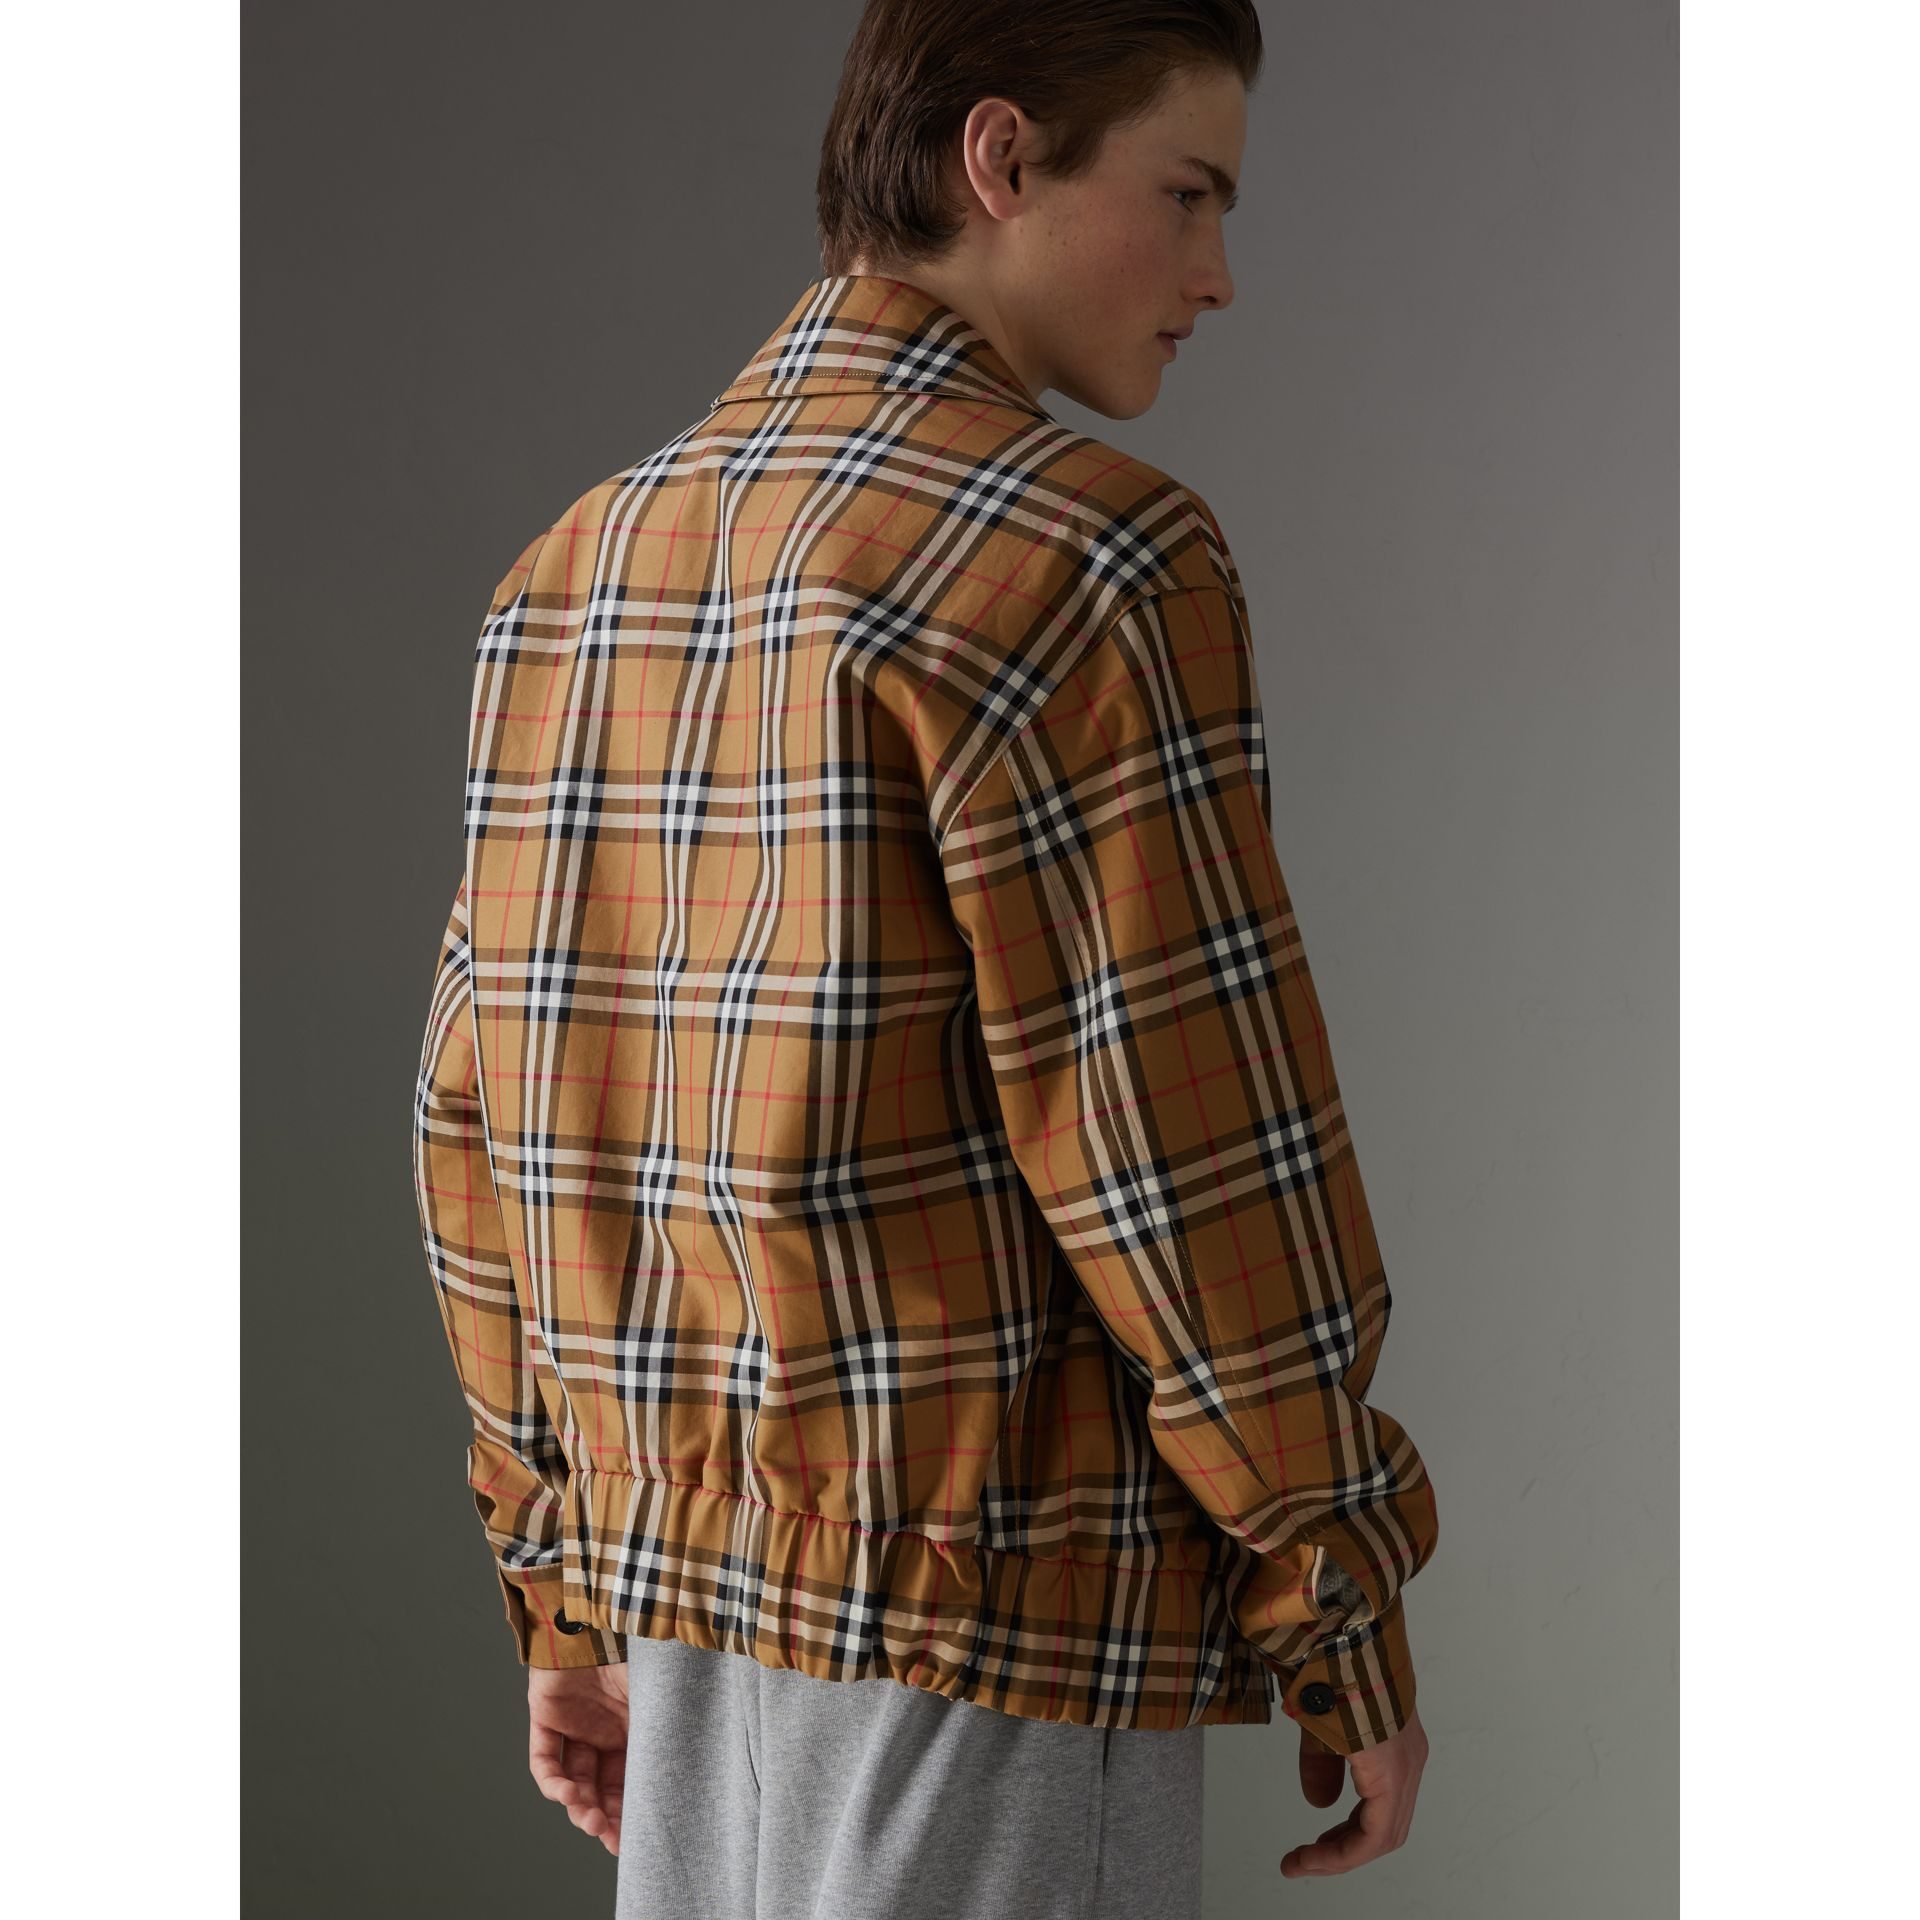 Veste Harrington à motif Rainbow Vintage check (Jaune Antique/arc-en-ciel) - Homme | Burberry - photo de la galerie 2